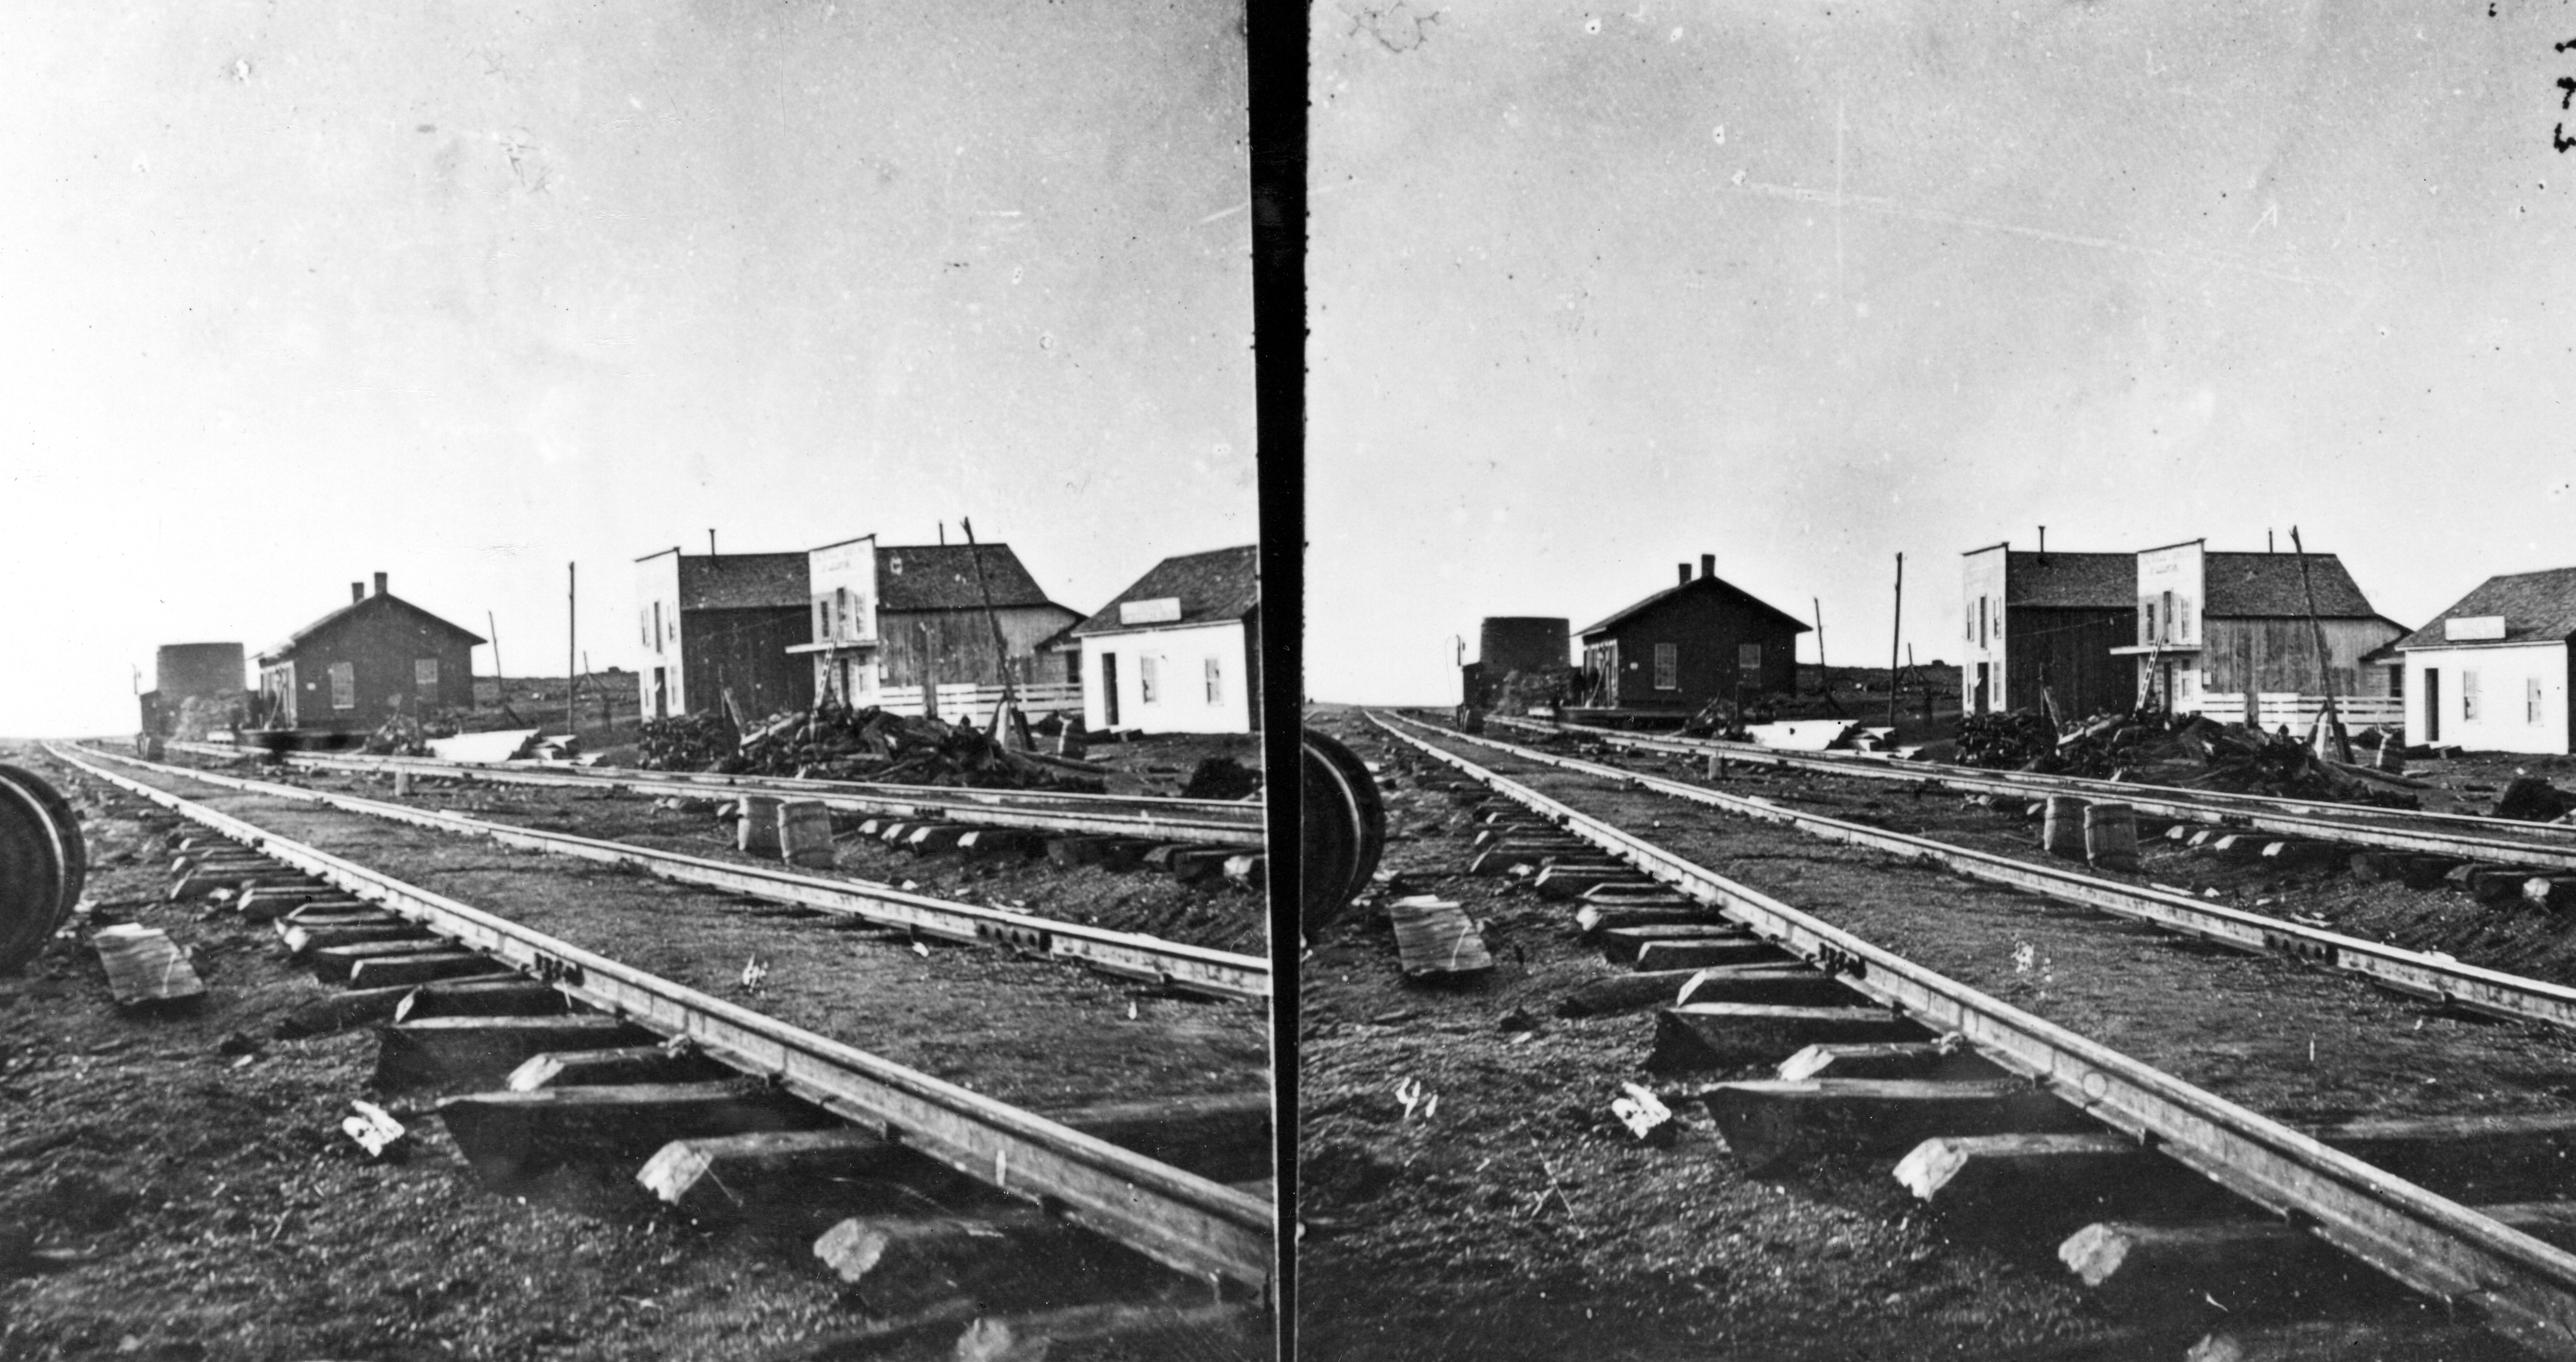 Sherman Station, summit of Black Hills. Albany County, Wyoming. 1869., Blackandwhite, BnW, Geology, Historical, HQ Photo